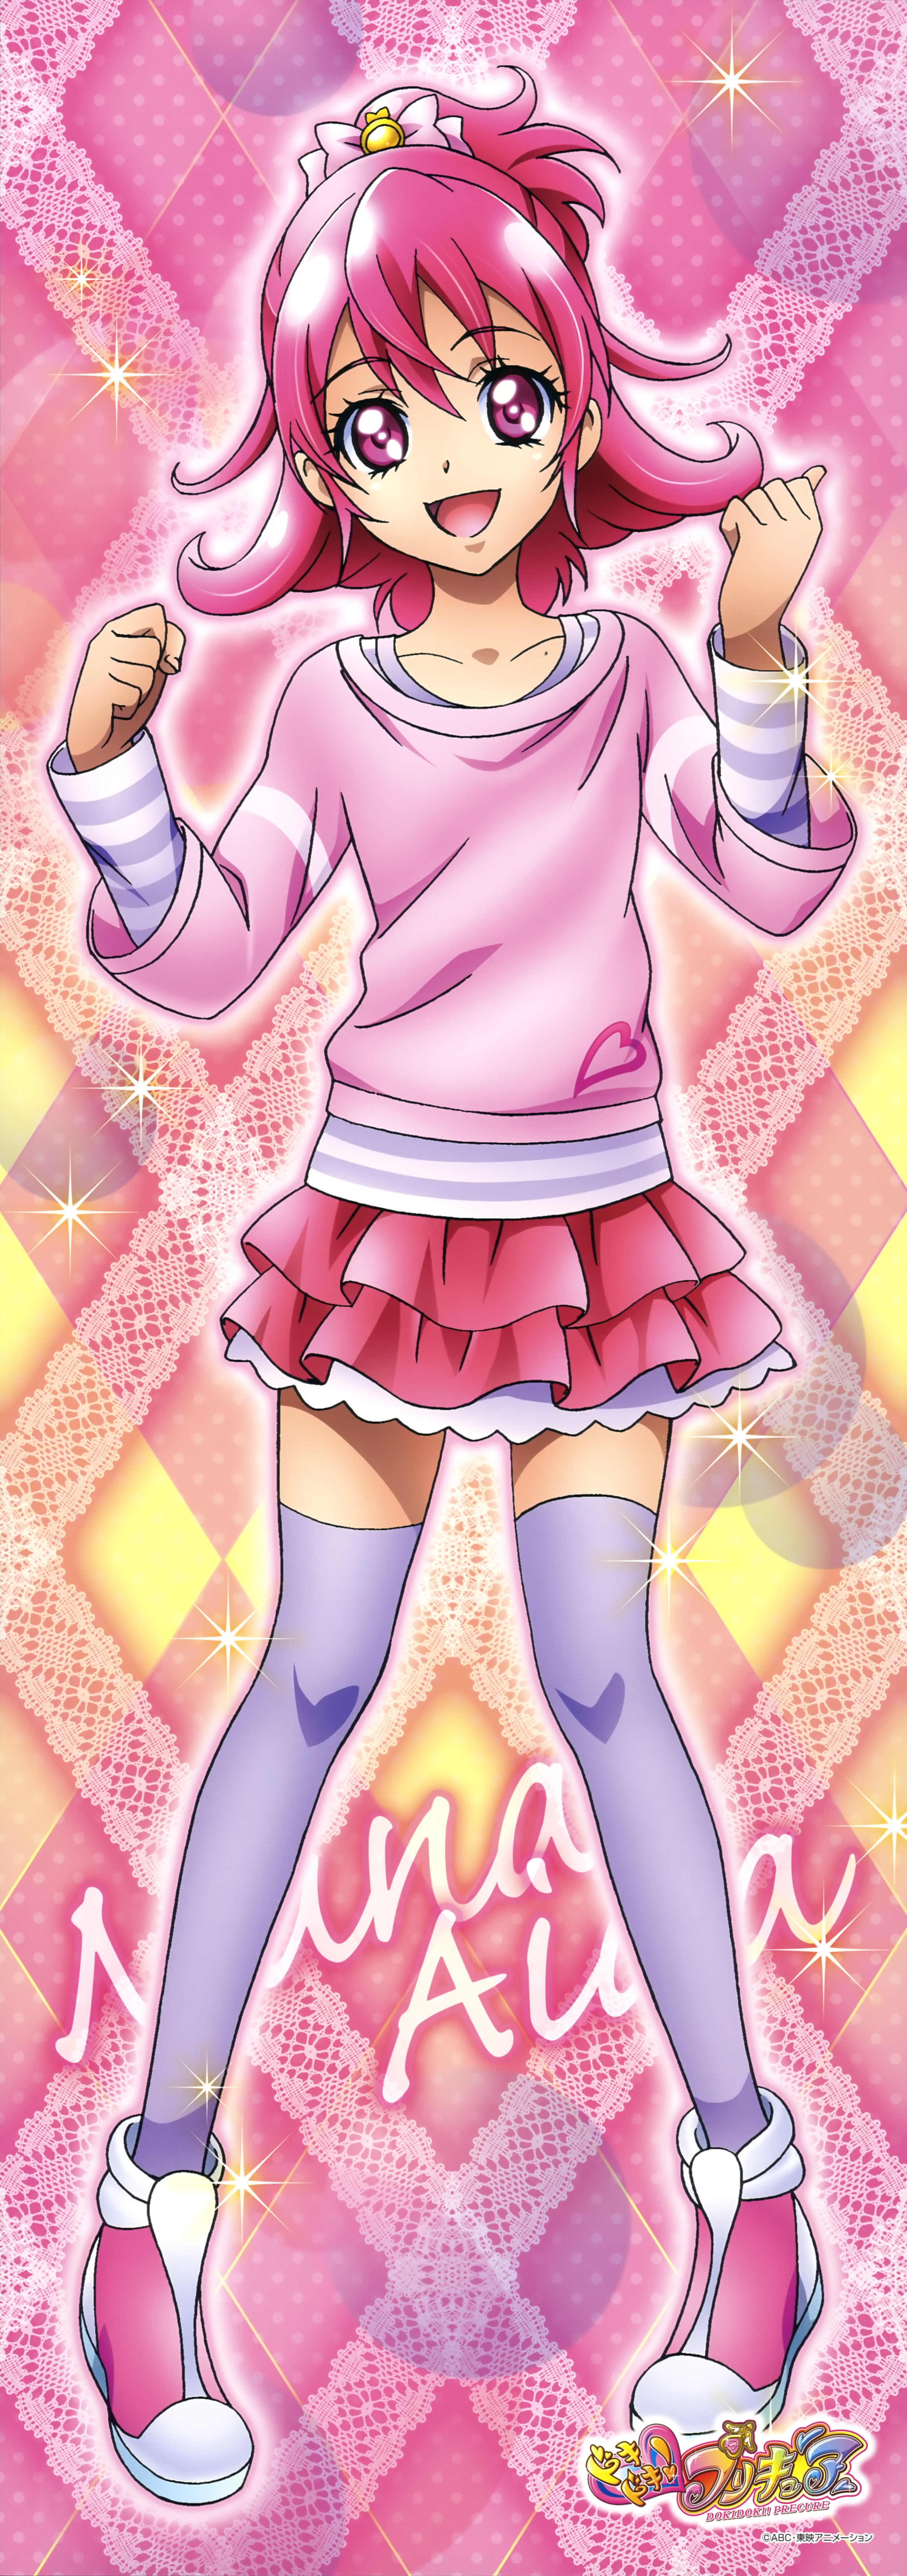 Dokidoki! Precure, Aida Mana, Pink Background, Pink Bow, Clenched Hand